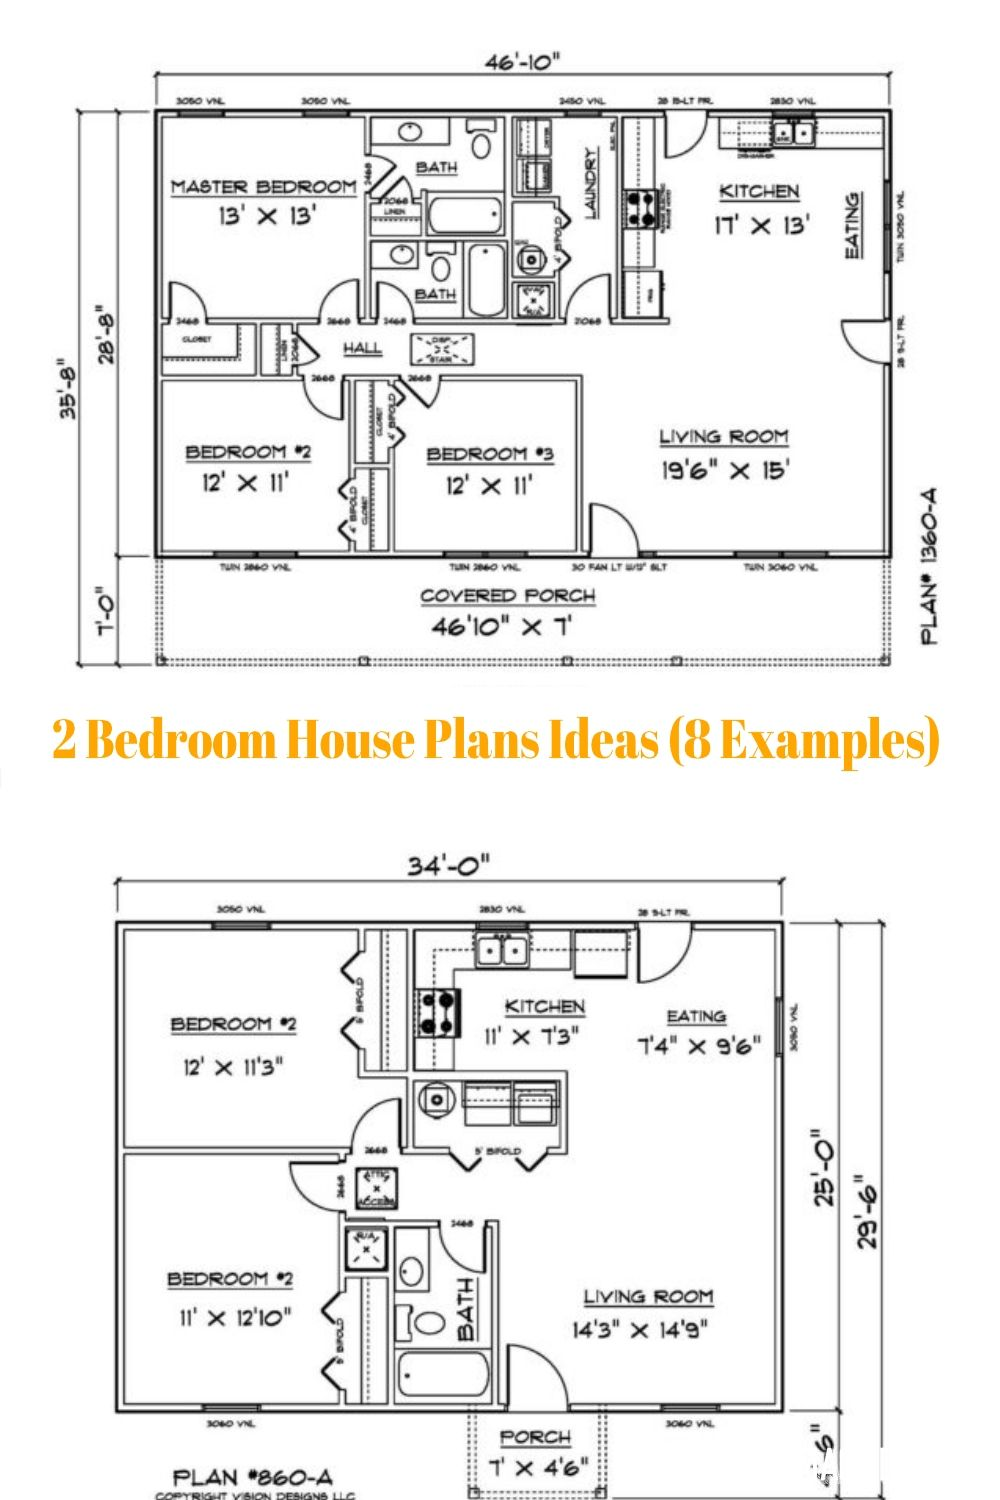 2 Bedroom House Plans Ideas 8 Examples Bedroom House Plans 2 Bedroom House Plans House Plans